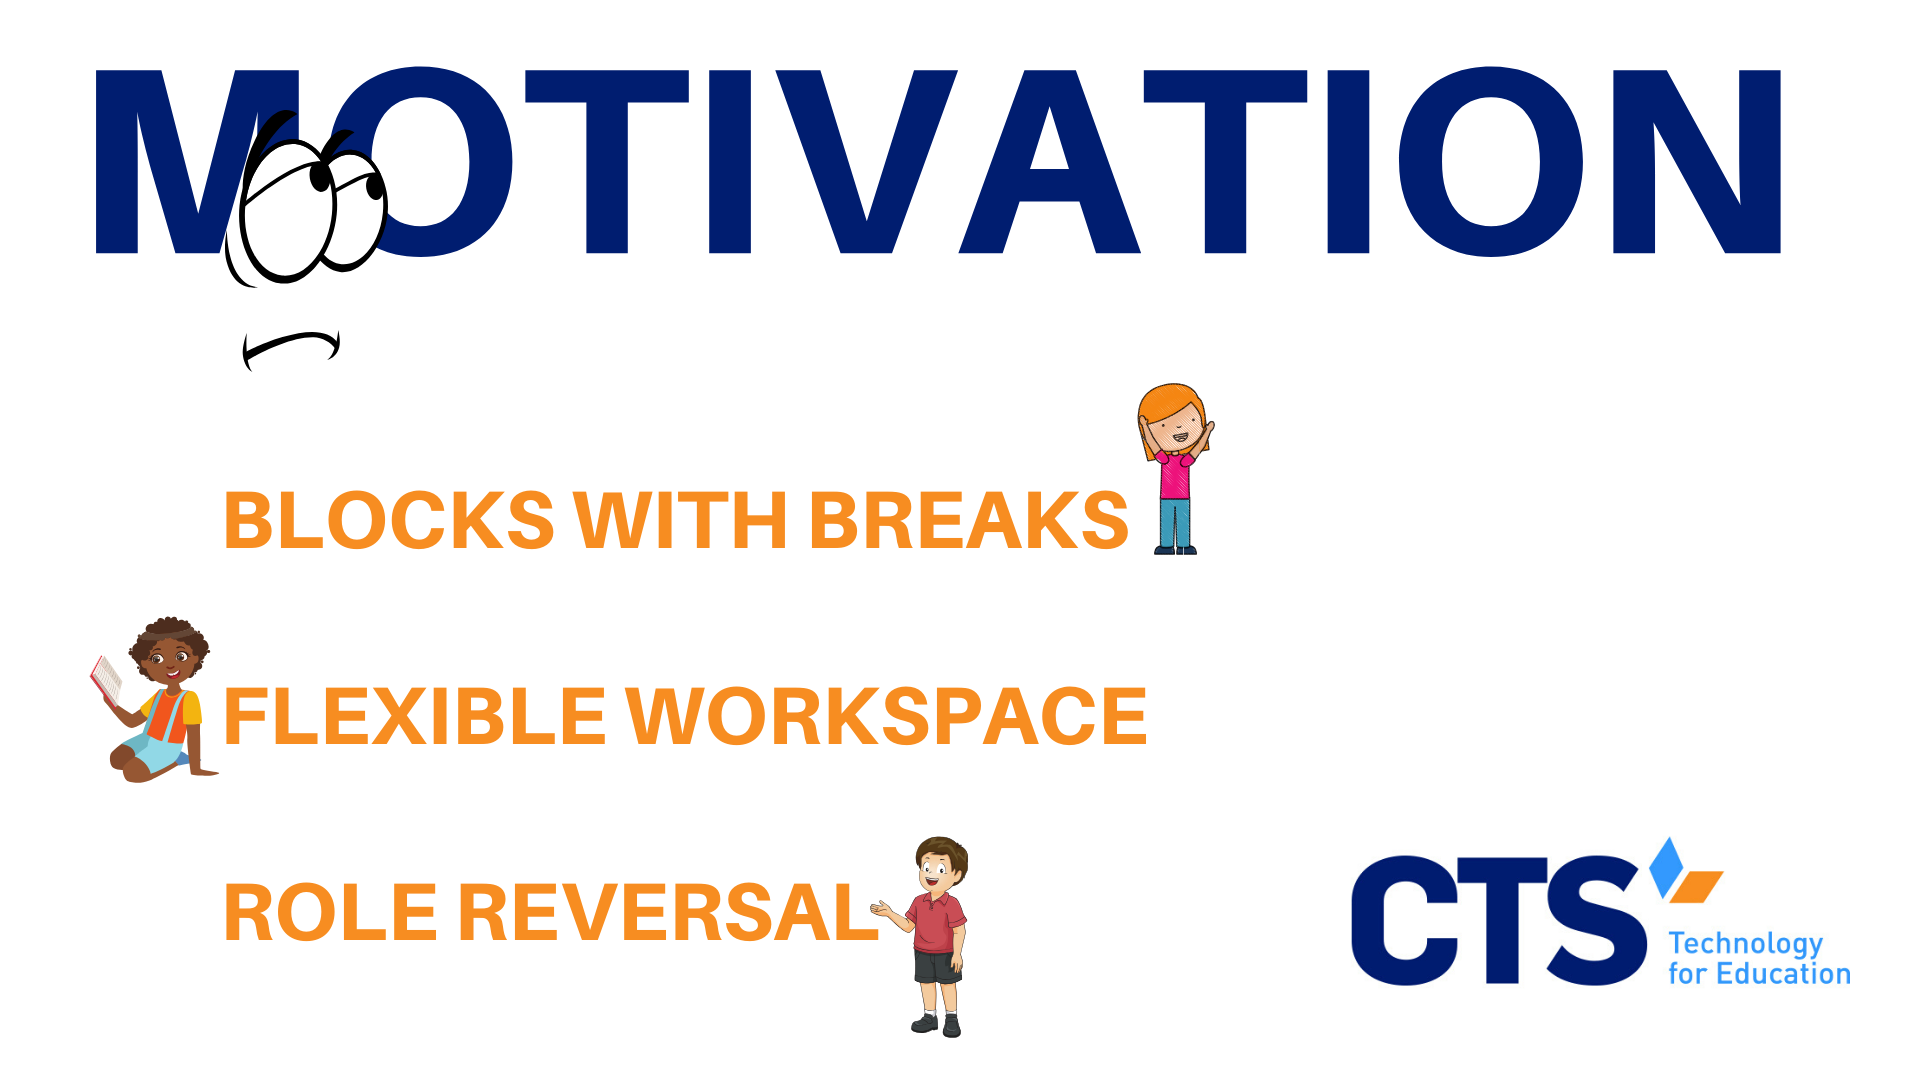 How to Maintain Students' Motivation During Remote Learning